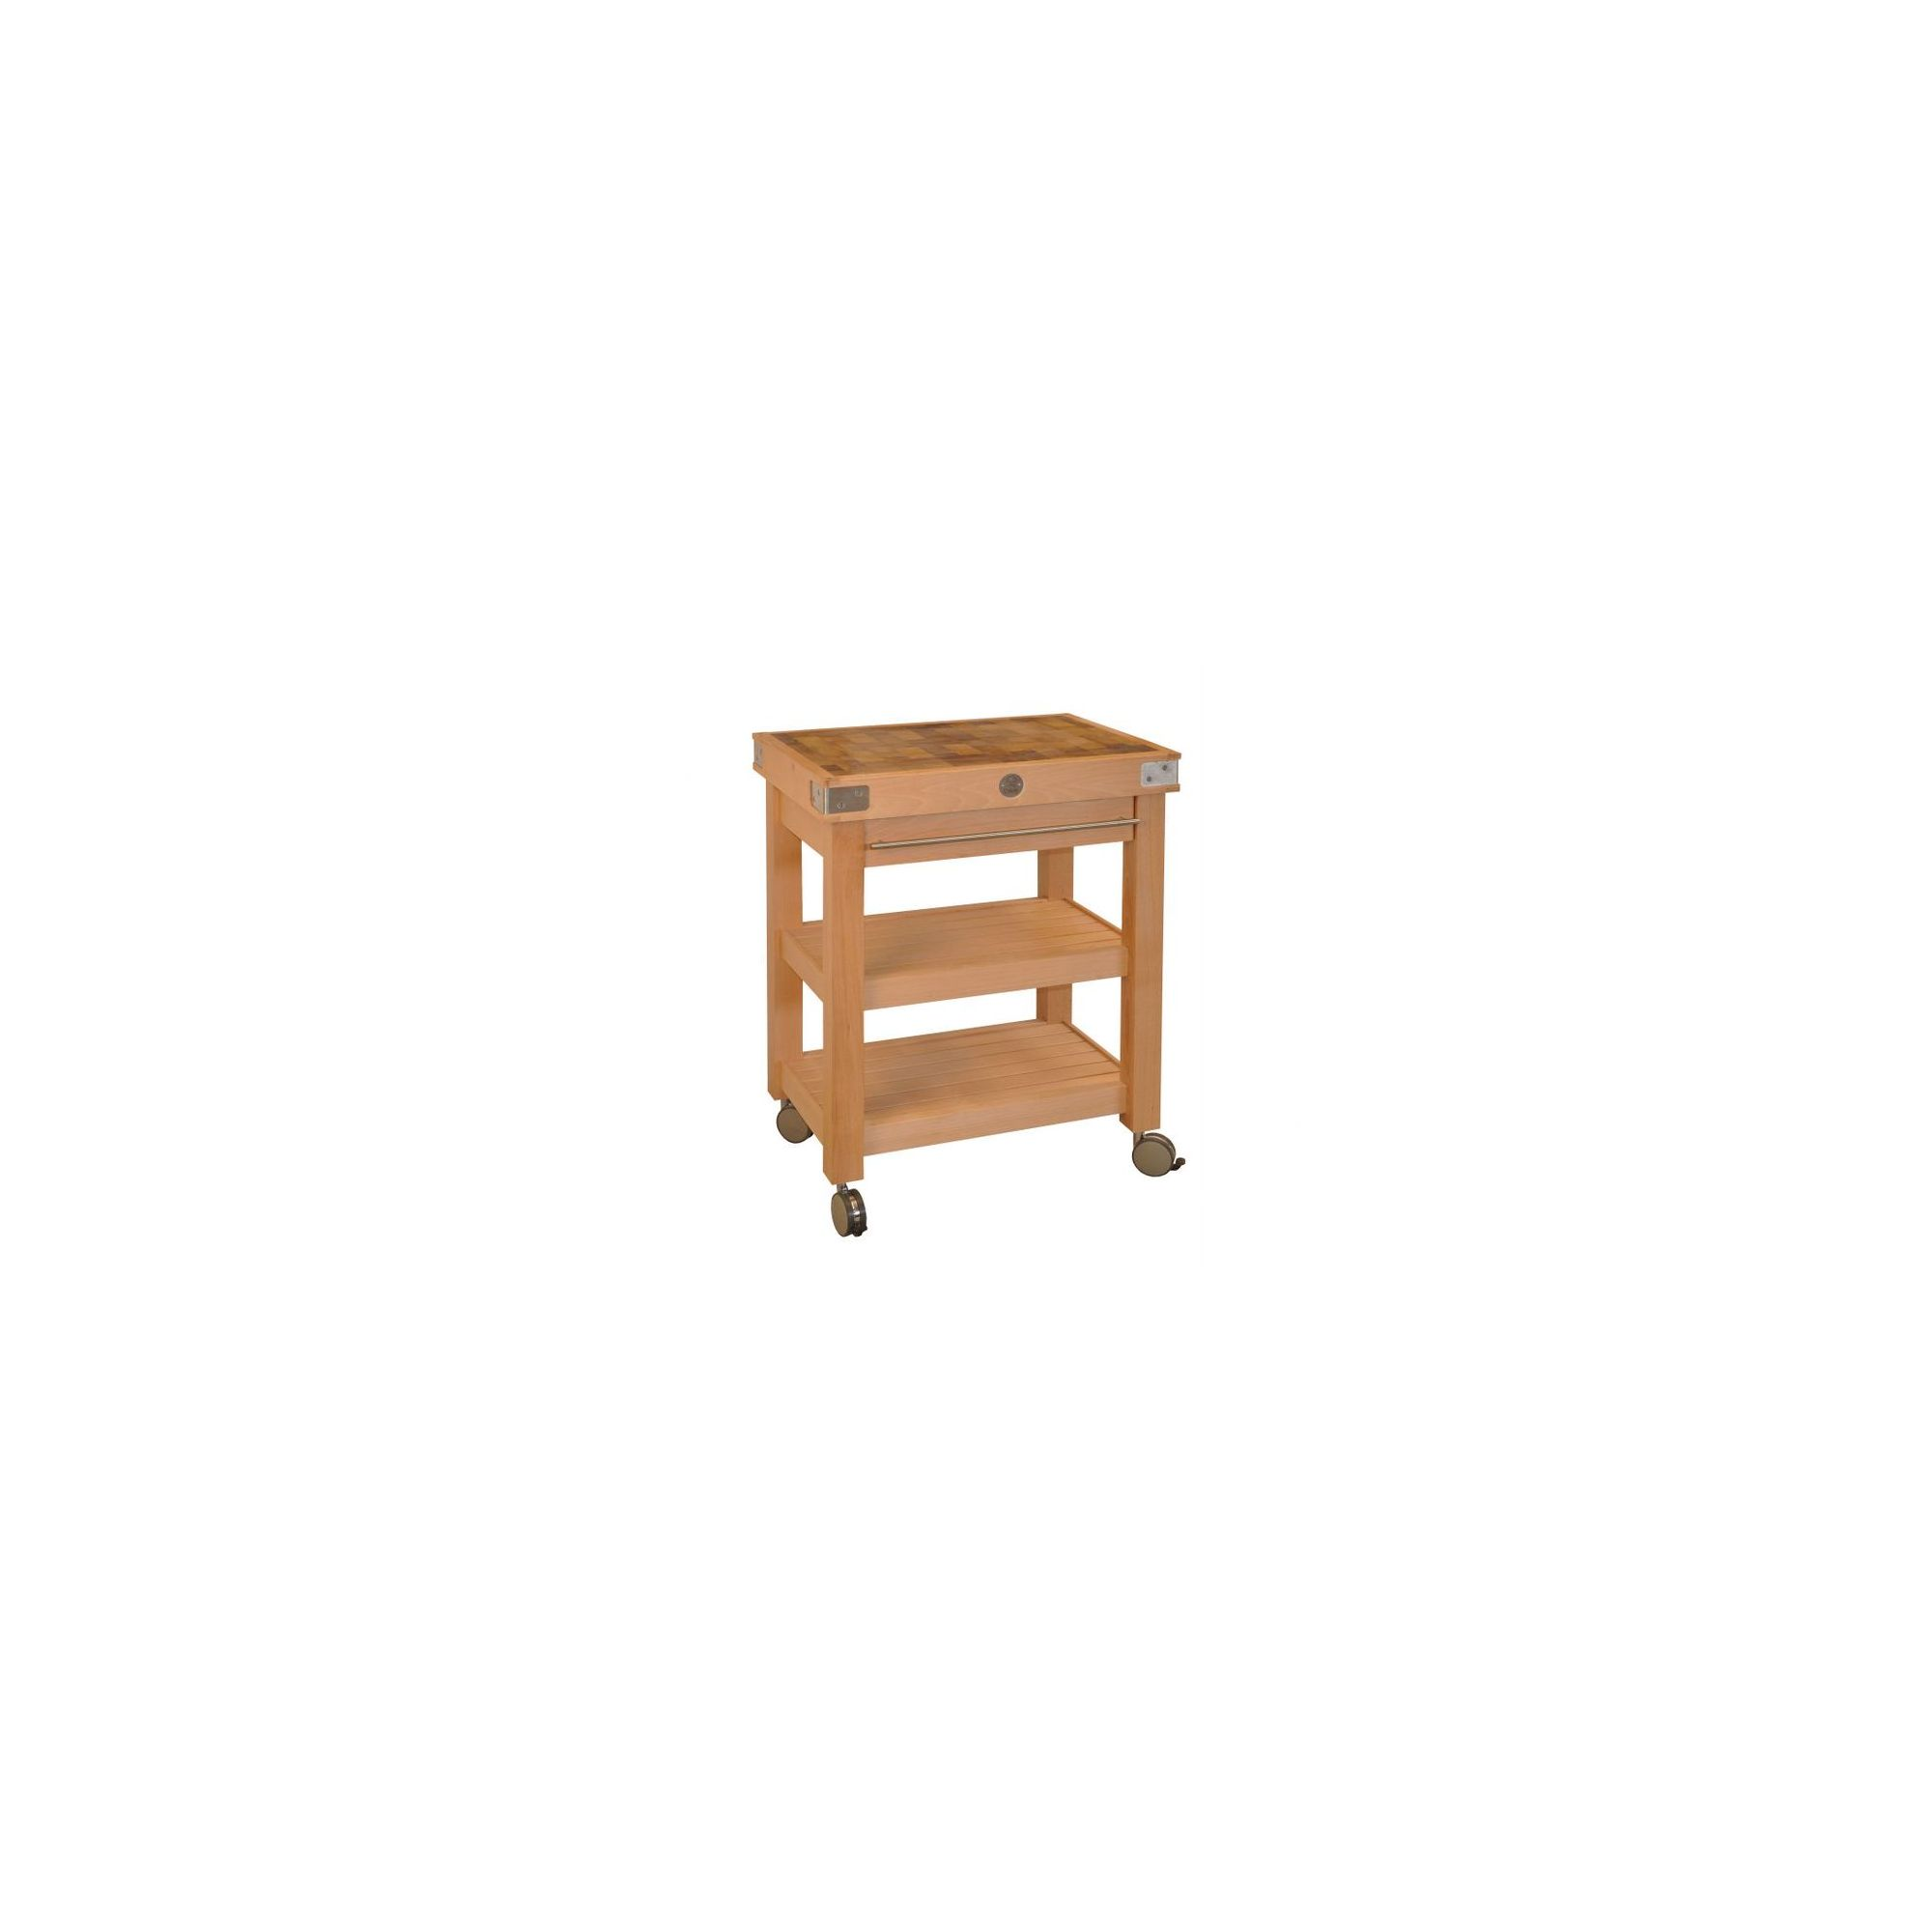 Chabret Double Stages Kitchen Cart - 85cm X 60cm X 50cm at Tesco Direct